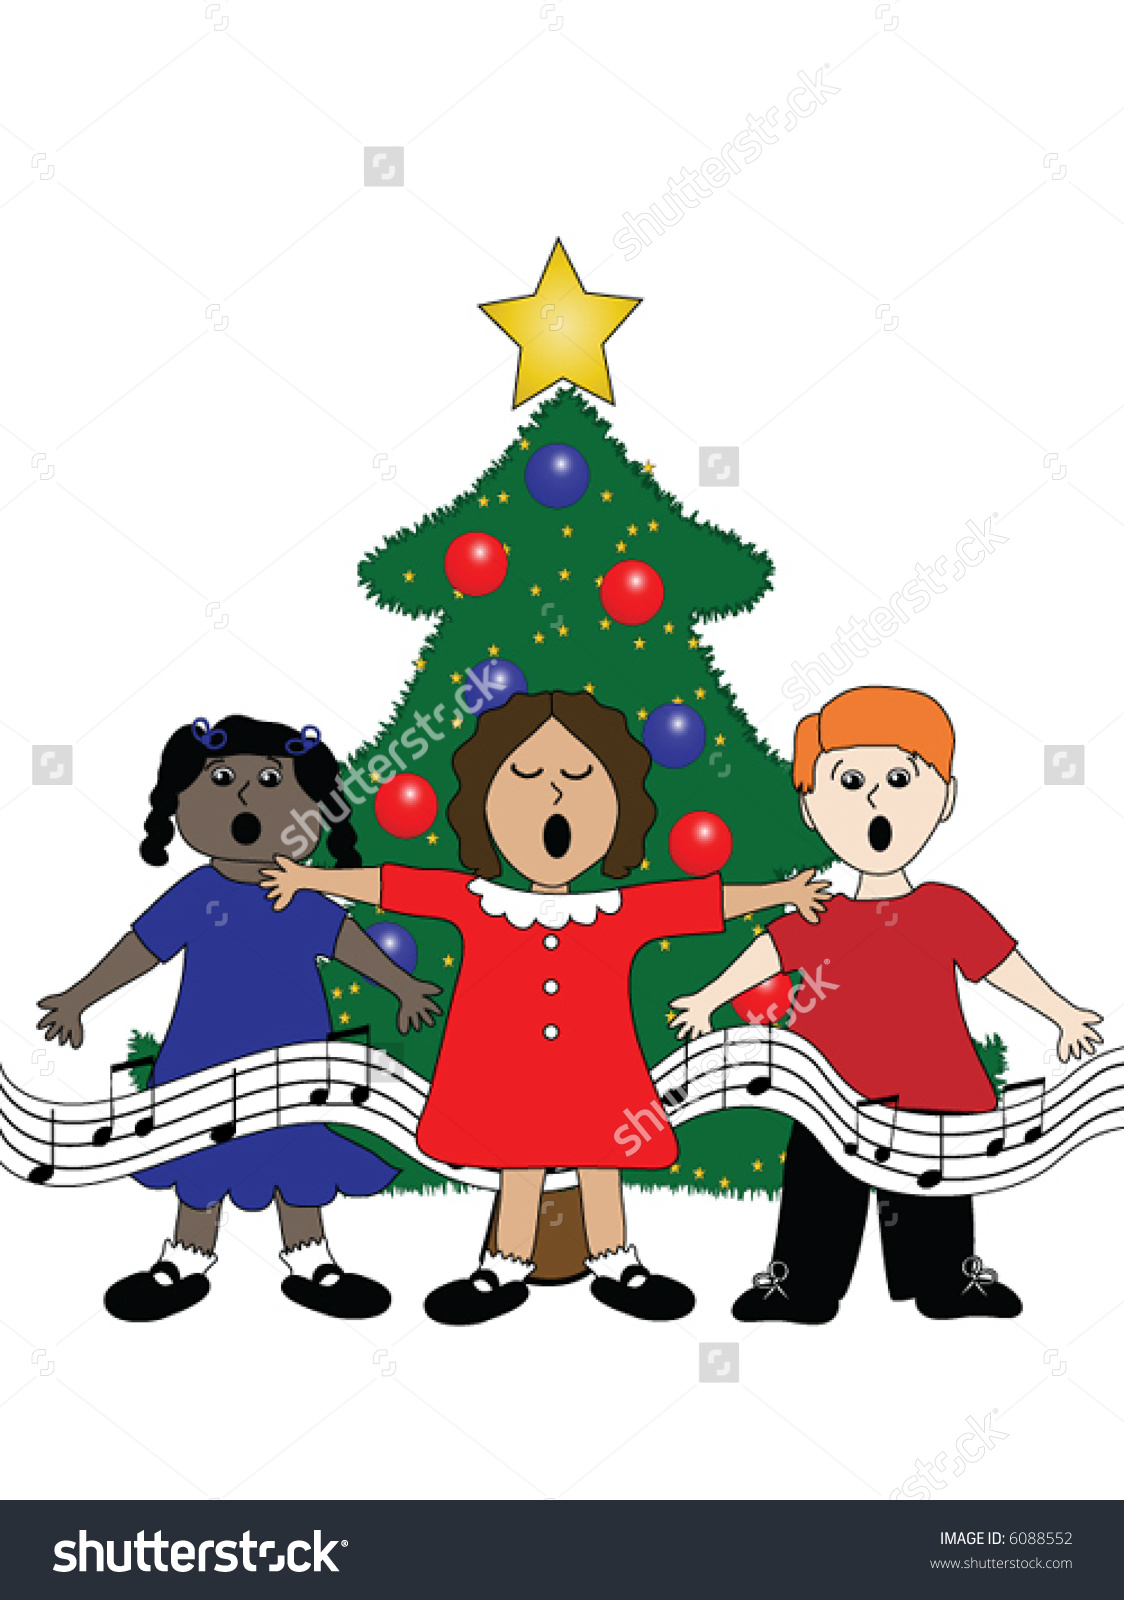 clipart christmas trees singing christmas carols clipground christmas caroling clipart christmas caroling clipart